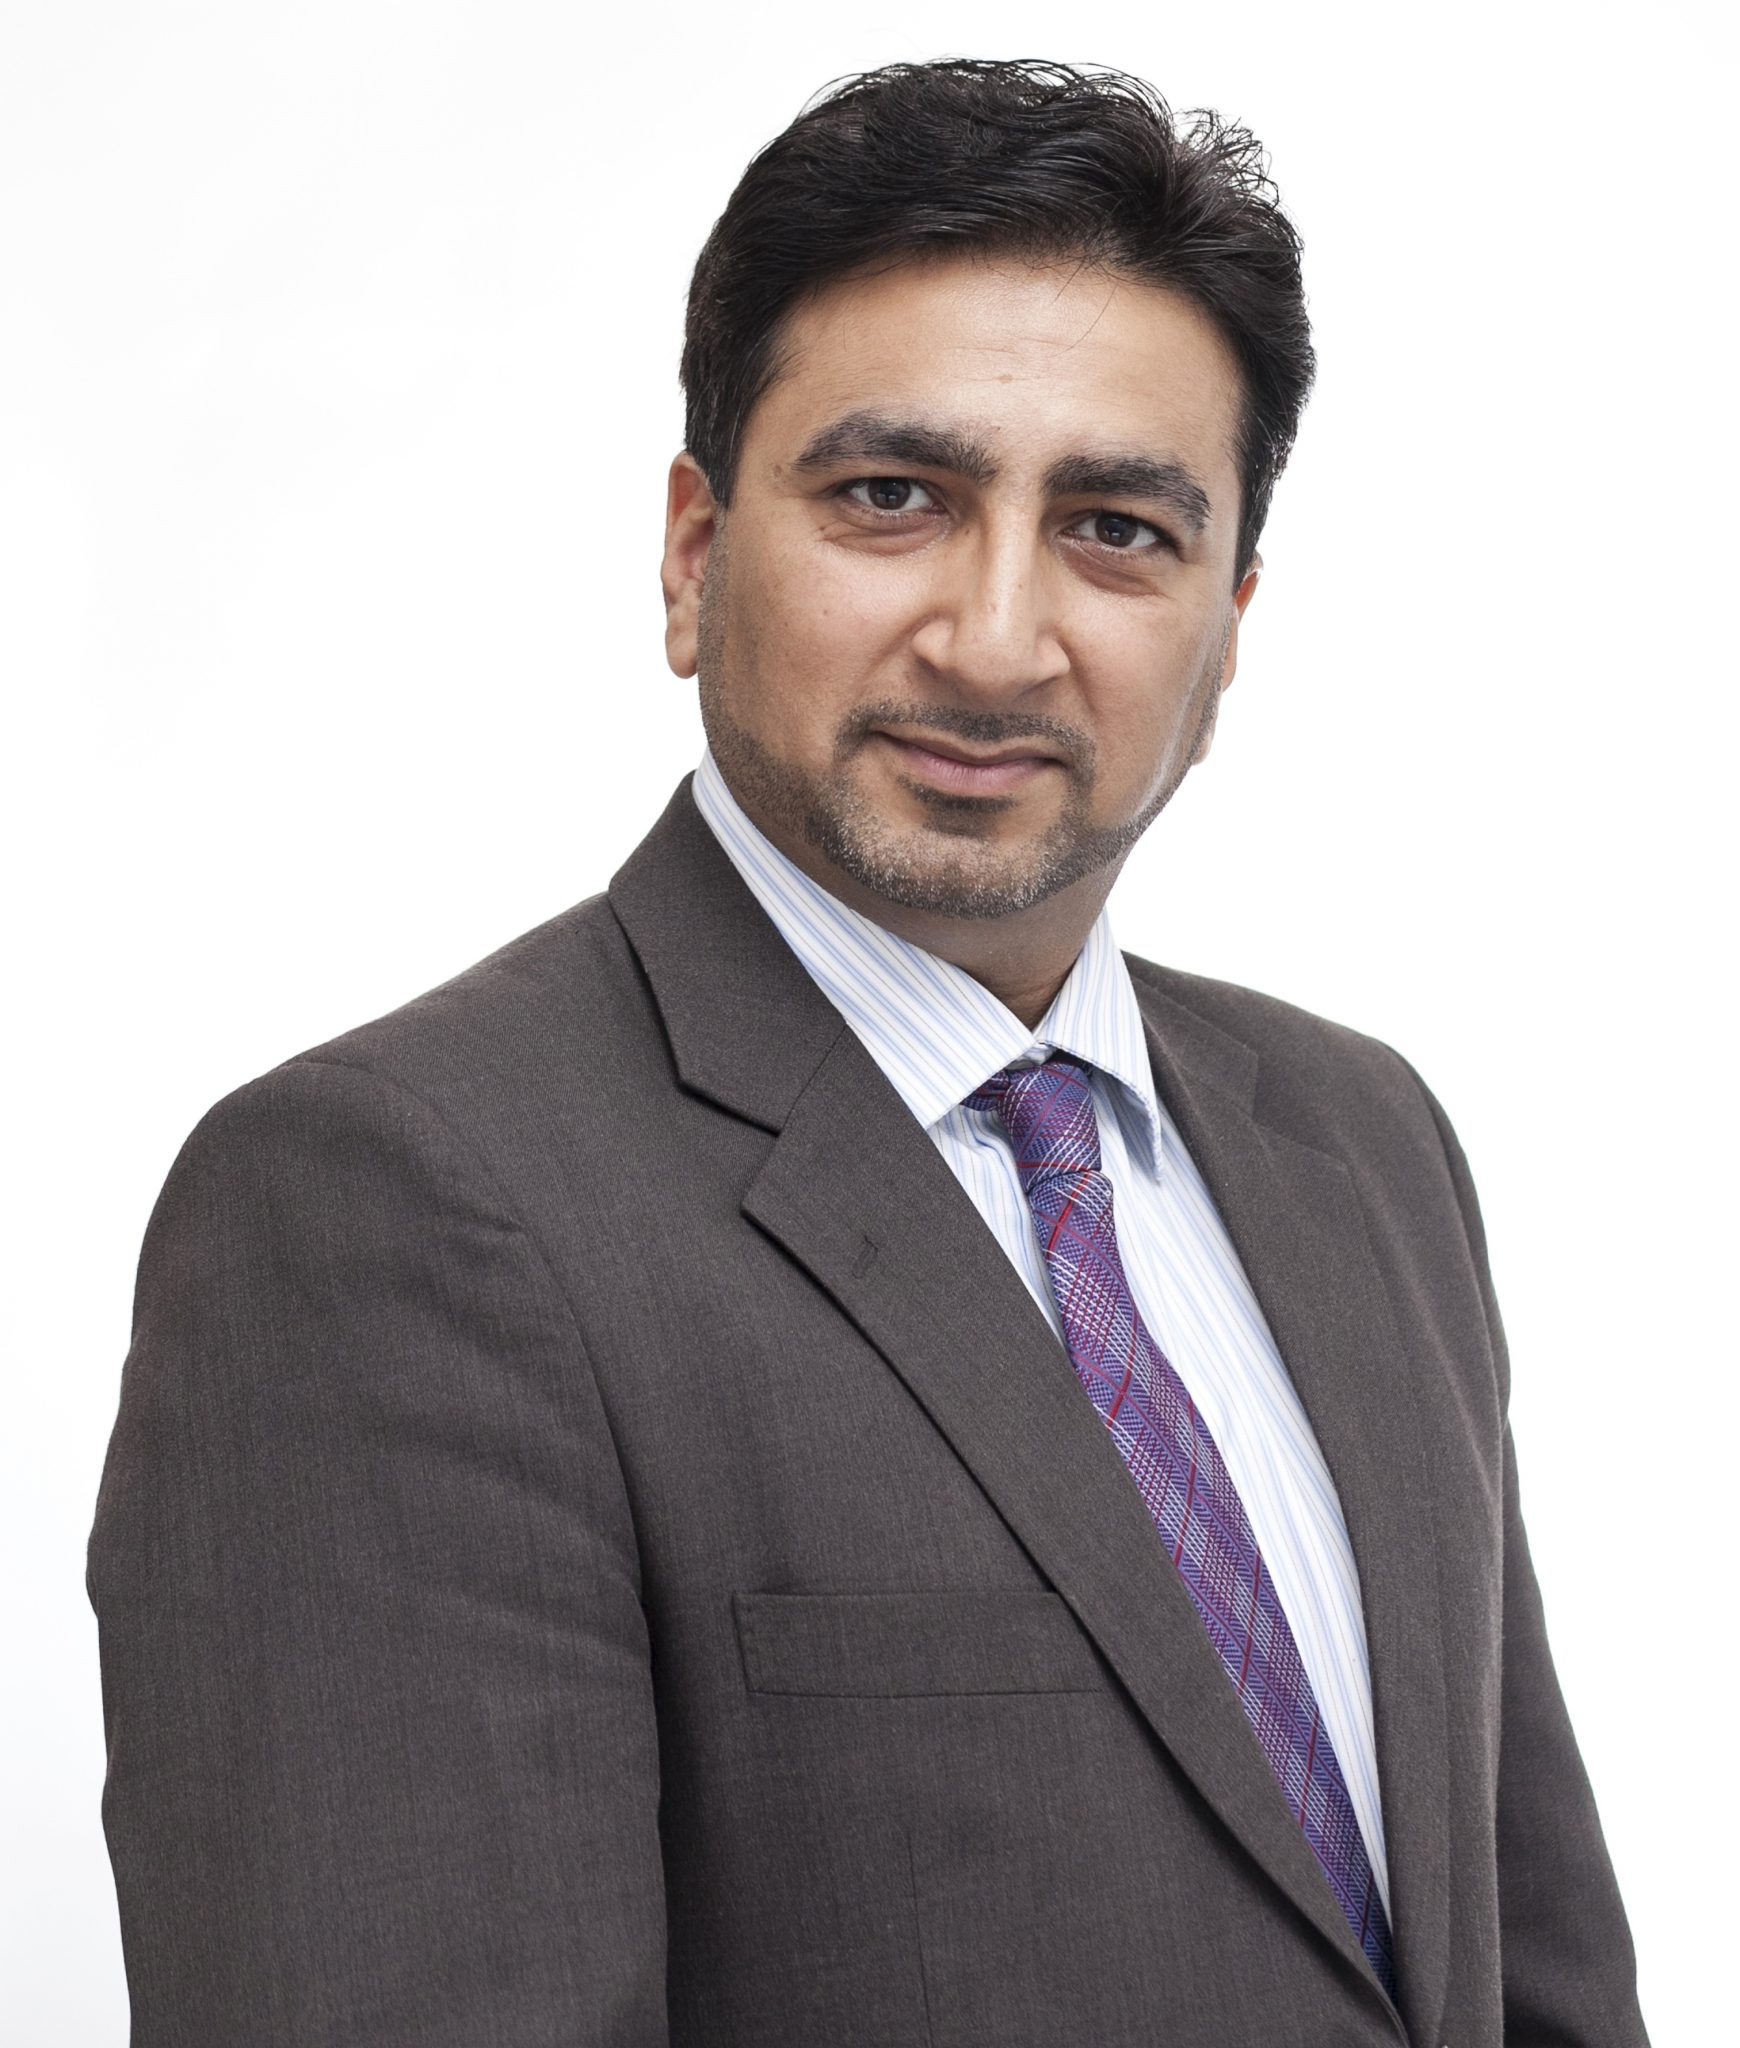 London and West Sussex, Business Barrister Tahir Ashraf - Called to the Bar by the Honourable Society of Lincoln's Inn http://tahirashraf.co.uk